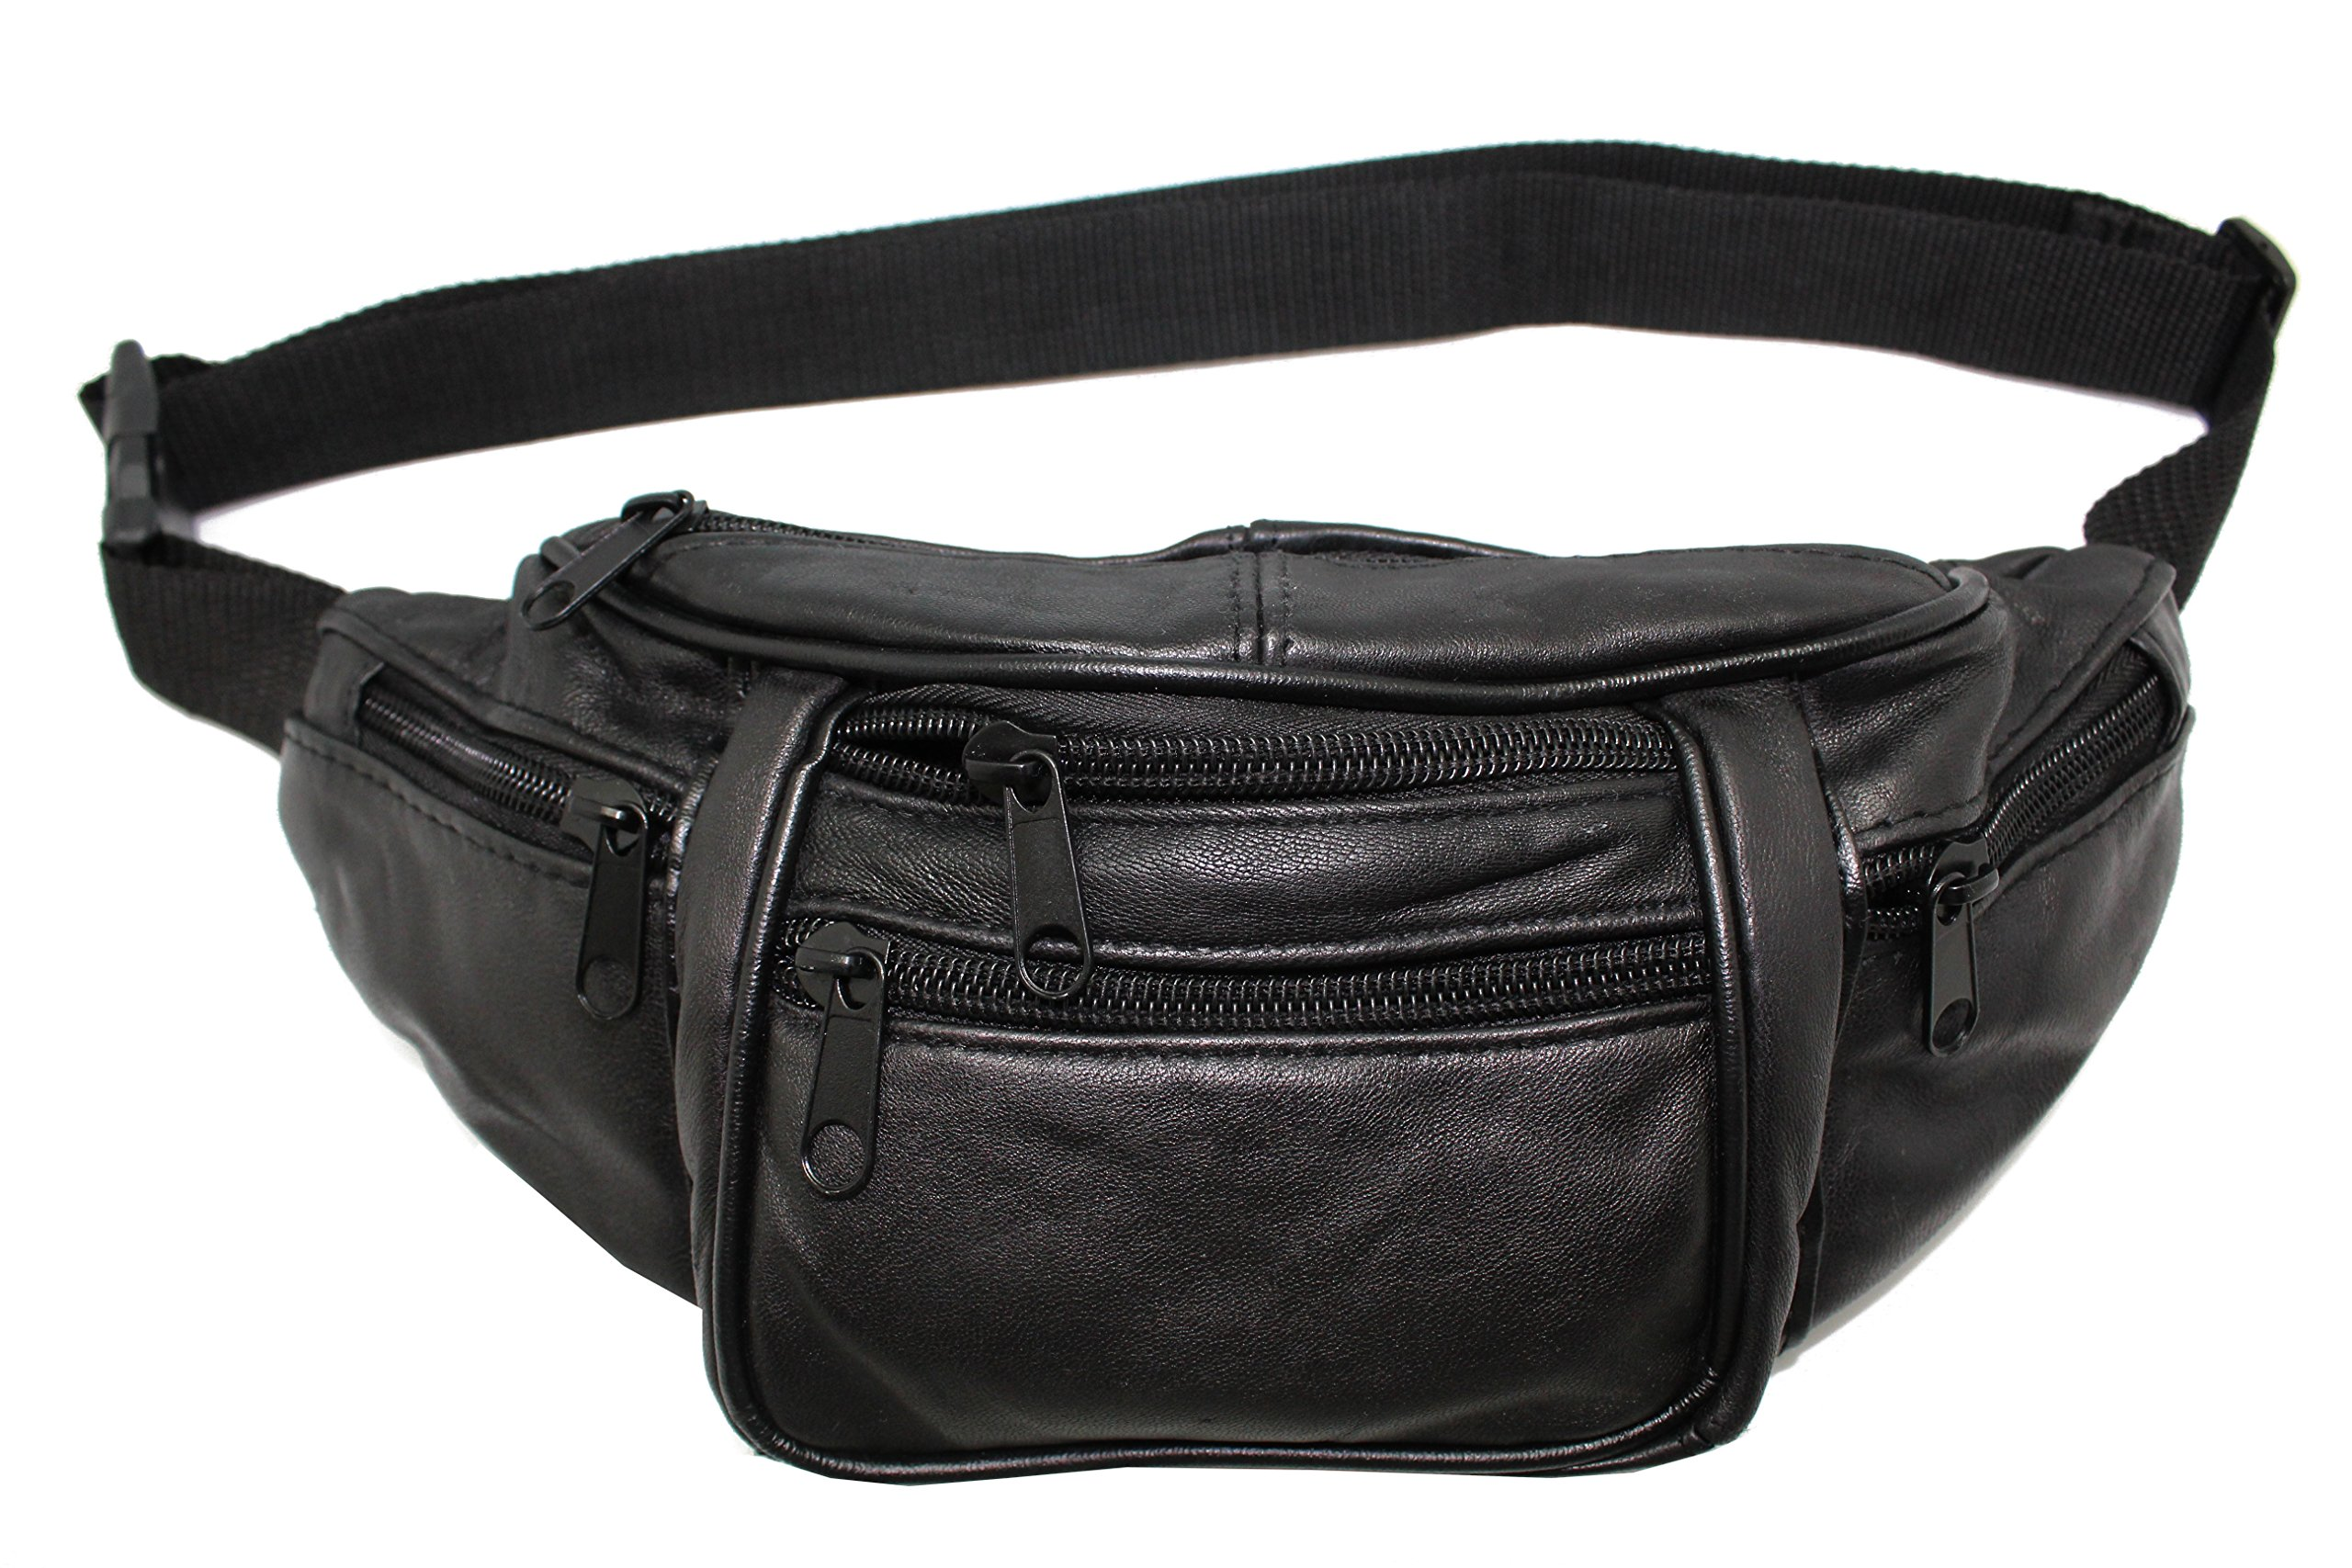 Black Sheep Leather Fanny Pack Biker Music Festival Waist,Belly Moon Bag,Travel Organizer Purse Zipper by Juzar Tapal Collection (Image #1)